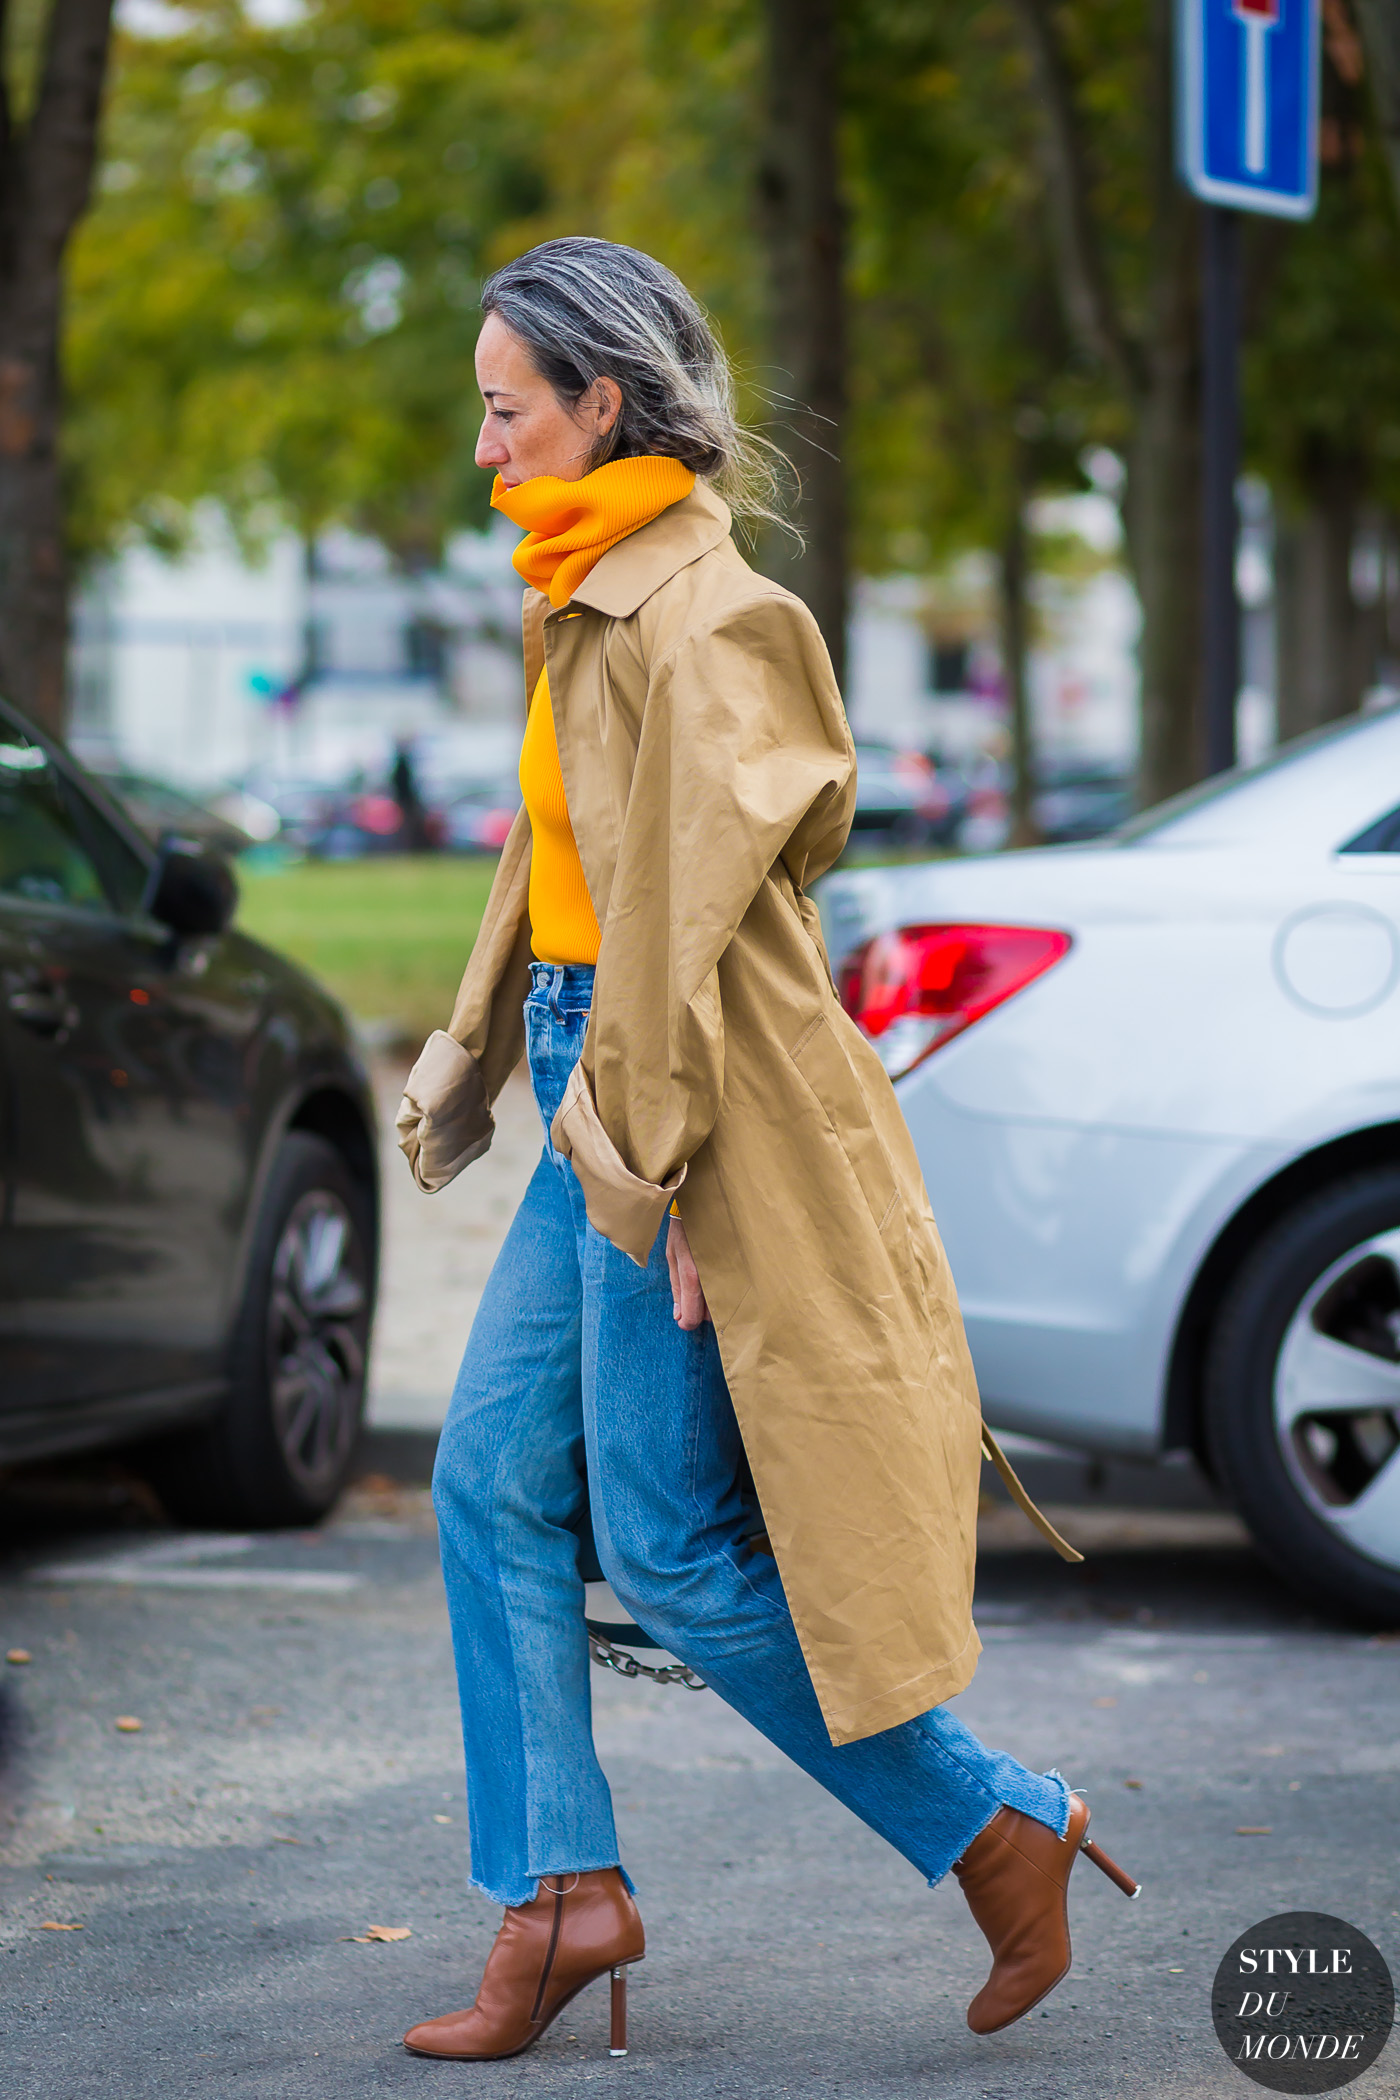 brigitte-chartrand-by-styledumonde-street-style-fashion-photography